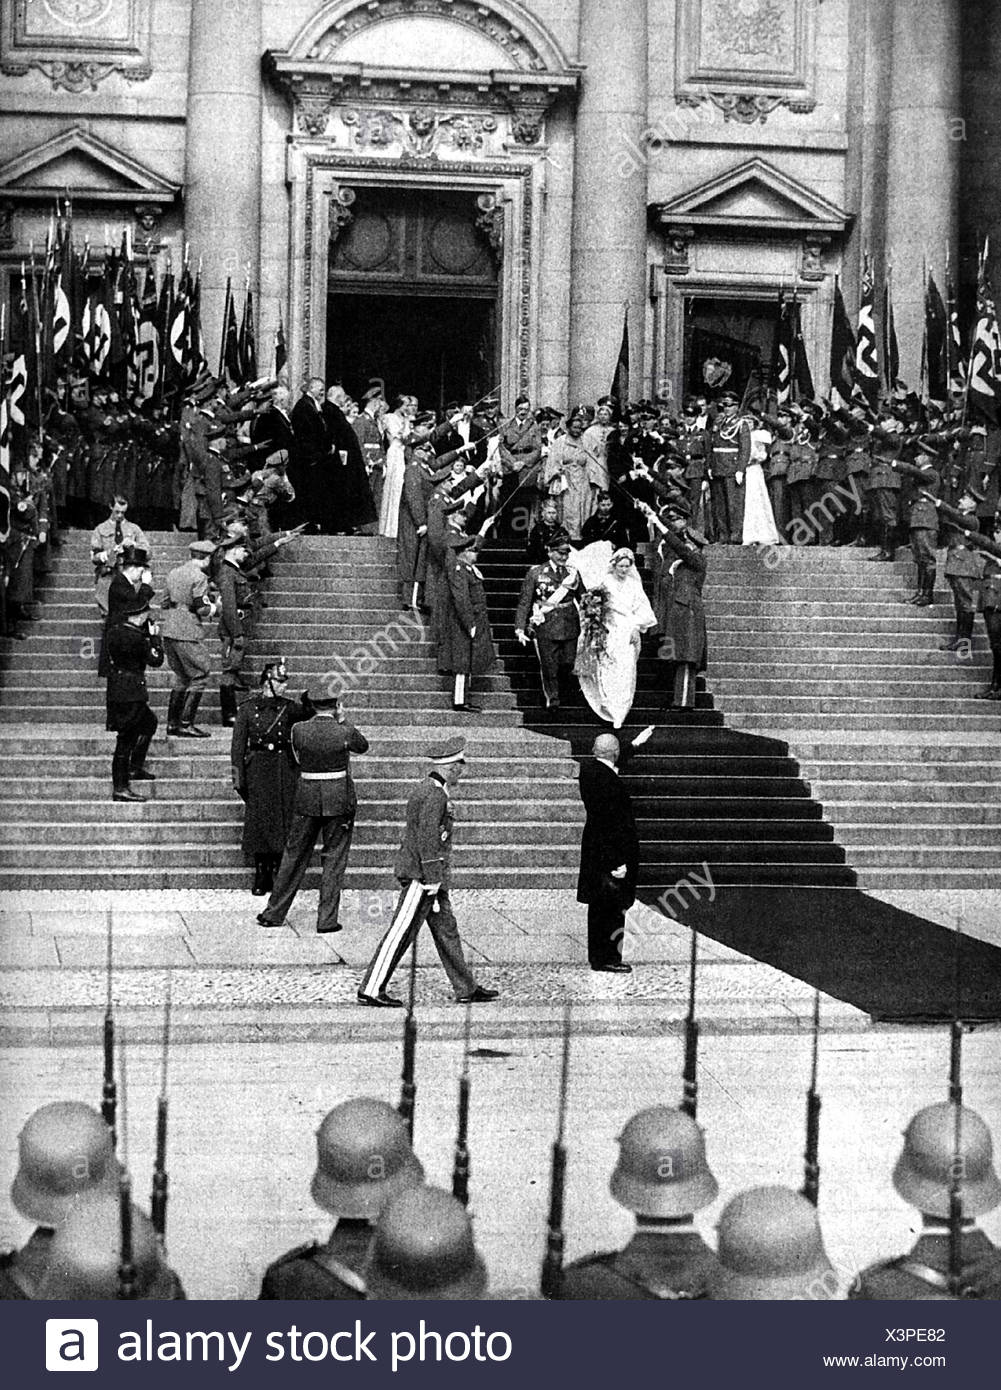 Goering, Hermann, 12.1.1893 - 15.10.1946, Nazi politician, Reich Marshall, scene, his wedding with Emmy Sonnemann, 10.4.1935, the bridal couple is leaving the cathedral, Berlin, Additional-Rights-Clearances-NA - Stock Image